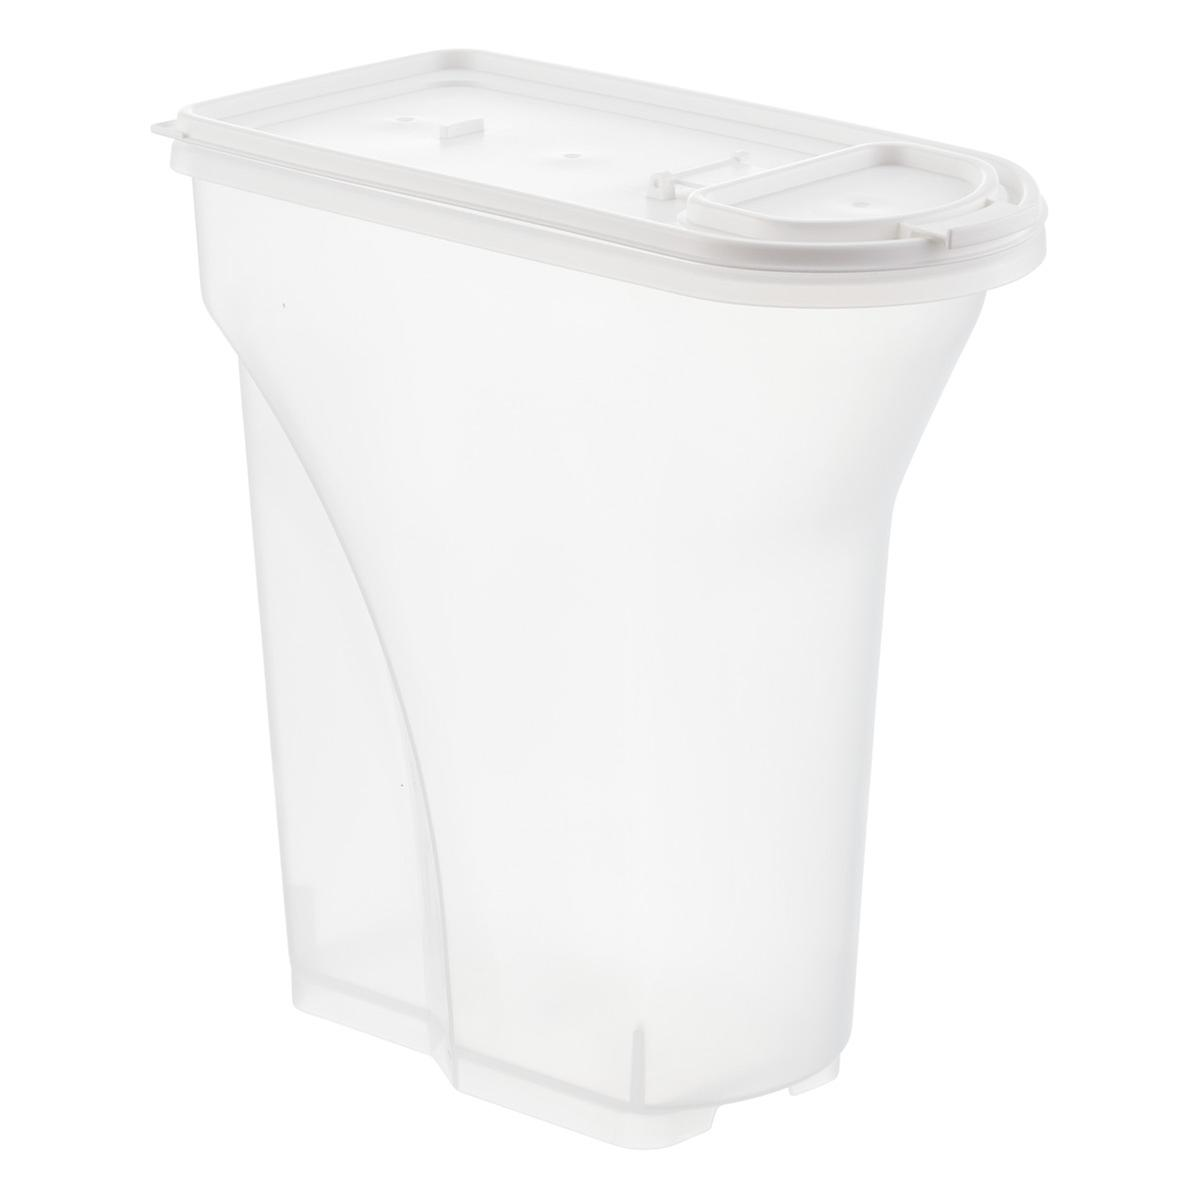 Iris 5 lb Pet Food Container The Container Store